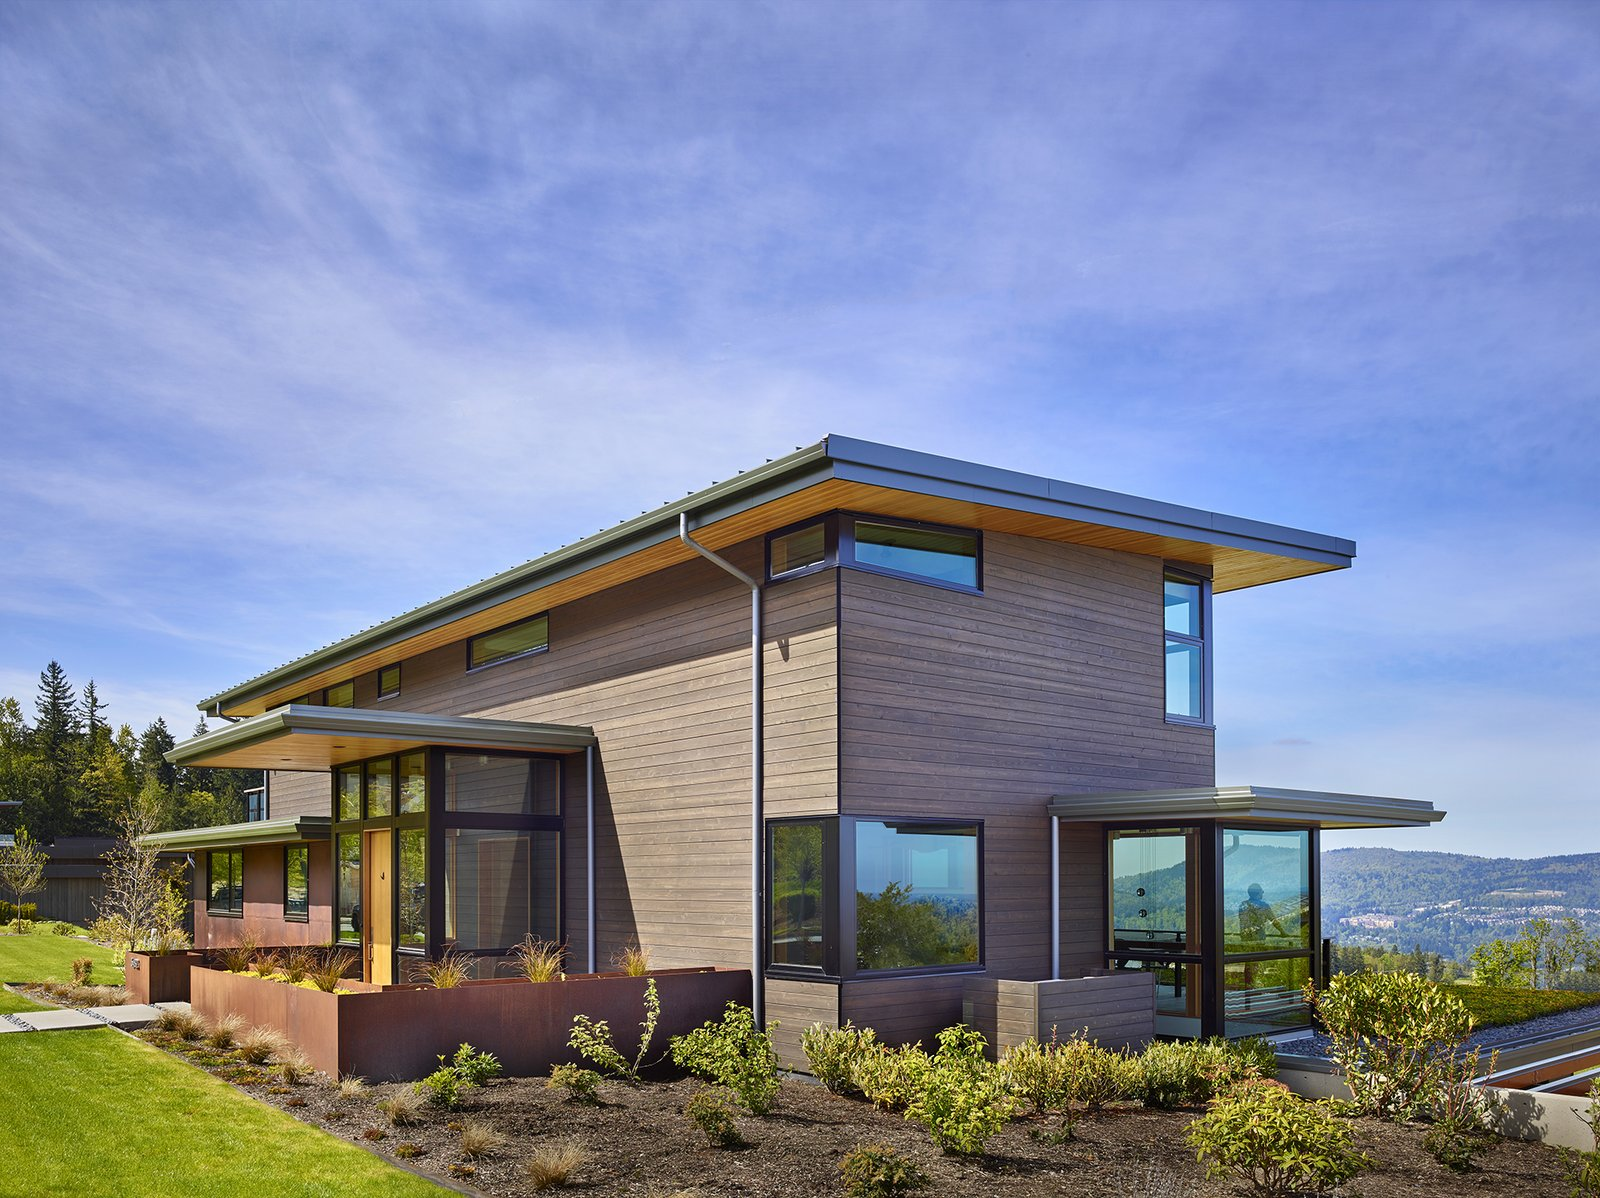 Issaquah Highlands Residence by Studio Zerbey Architecture